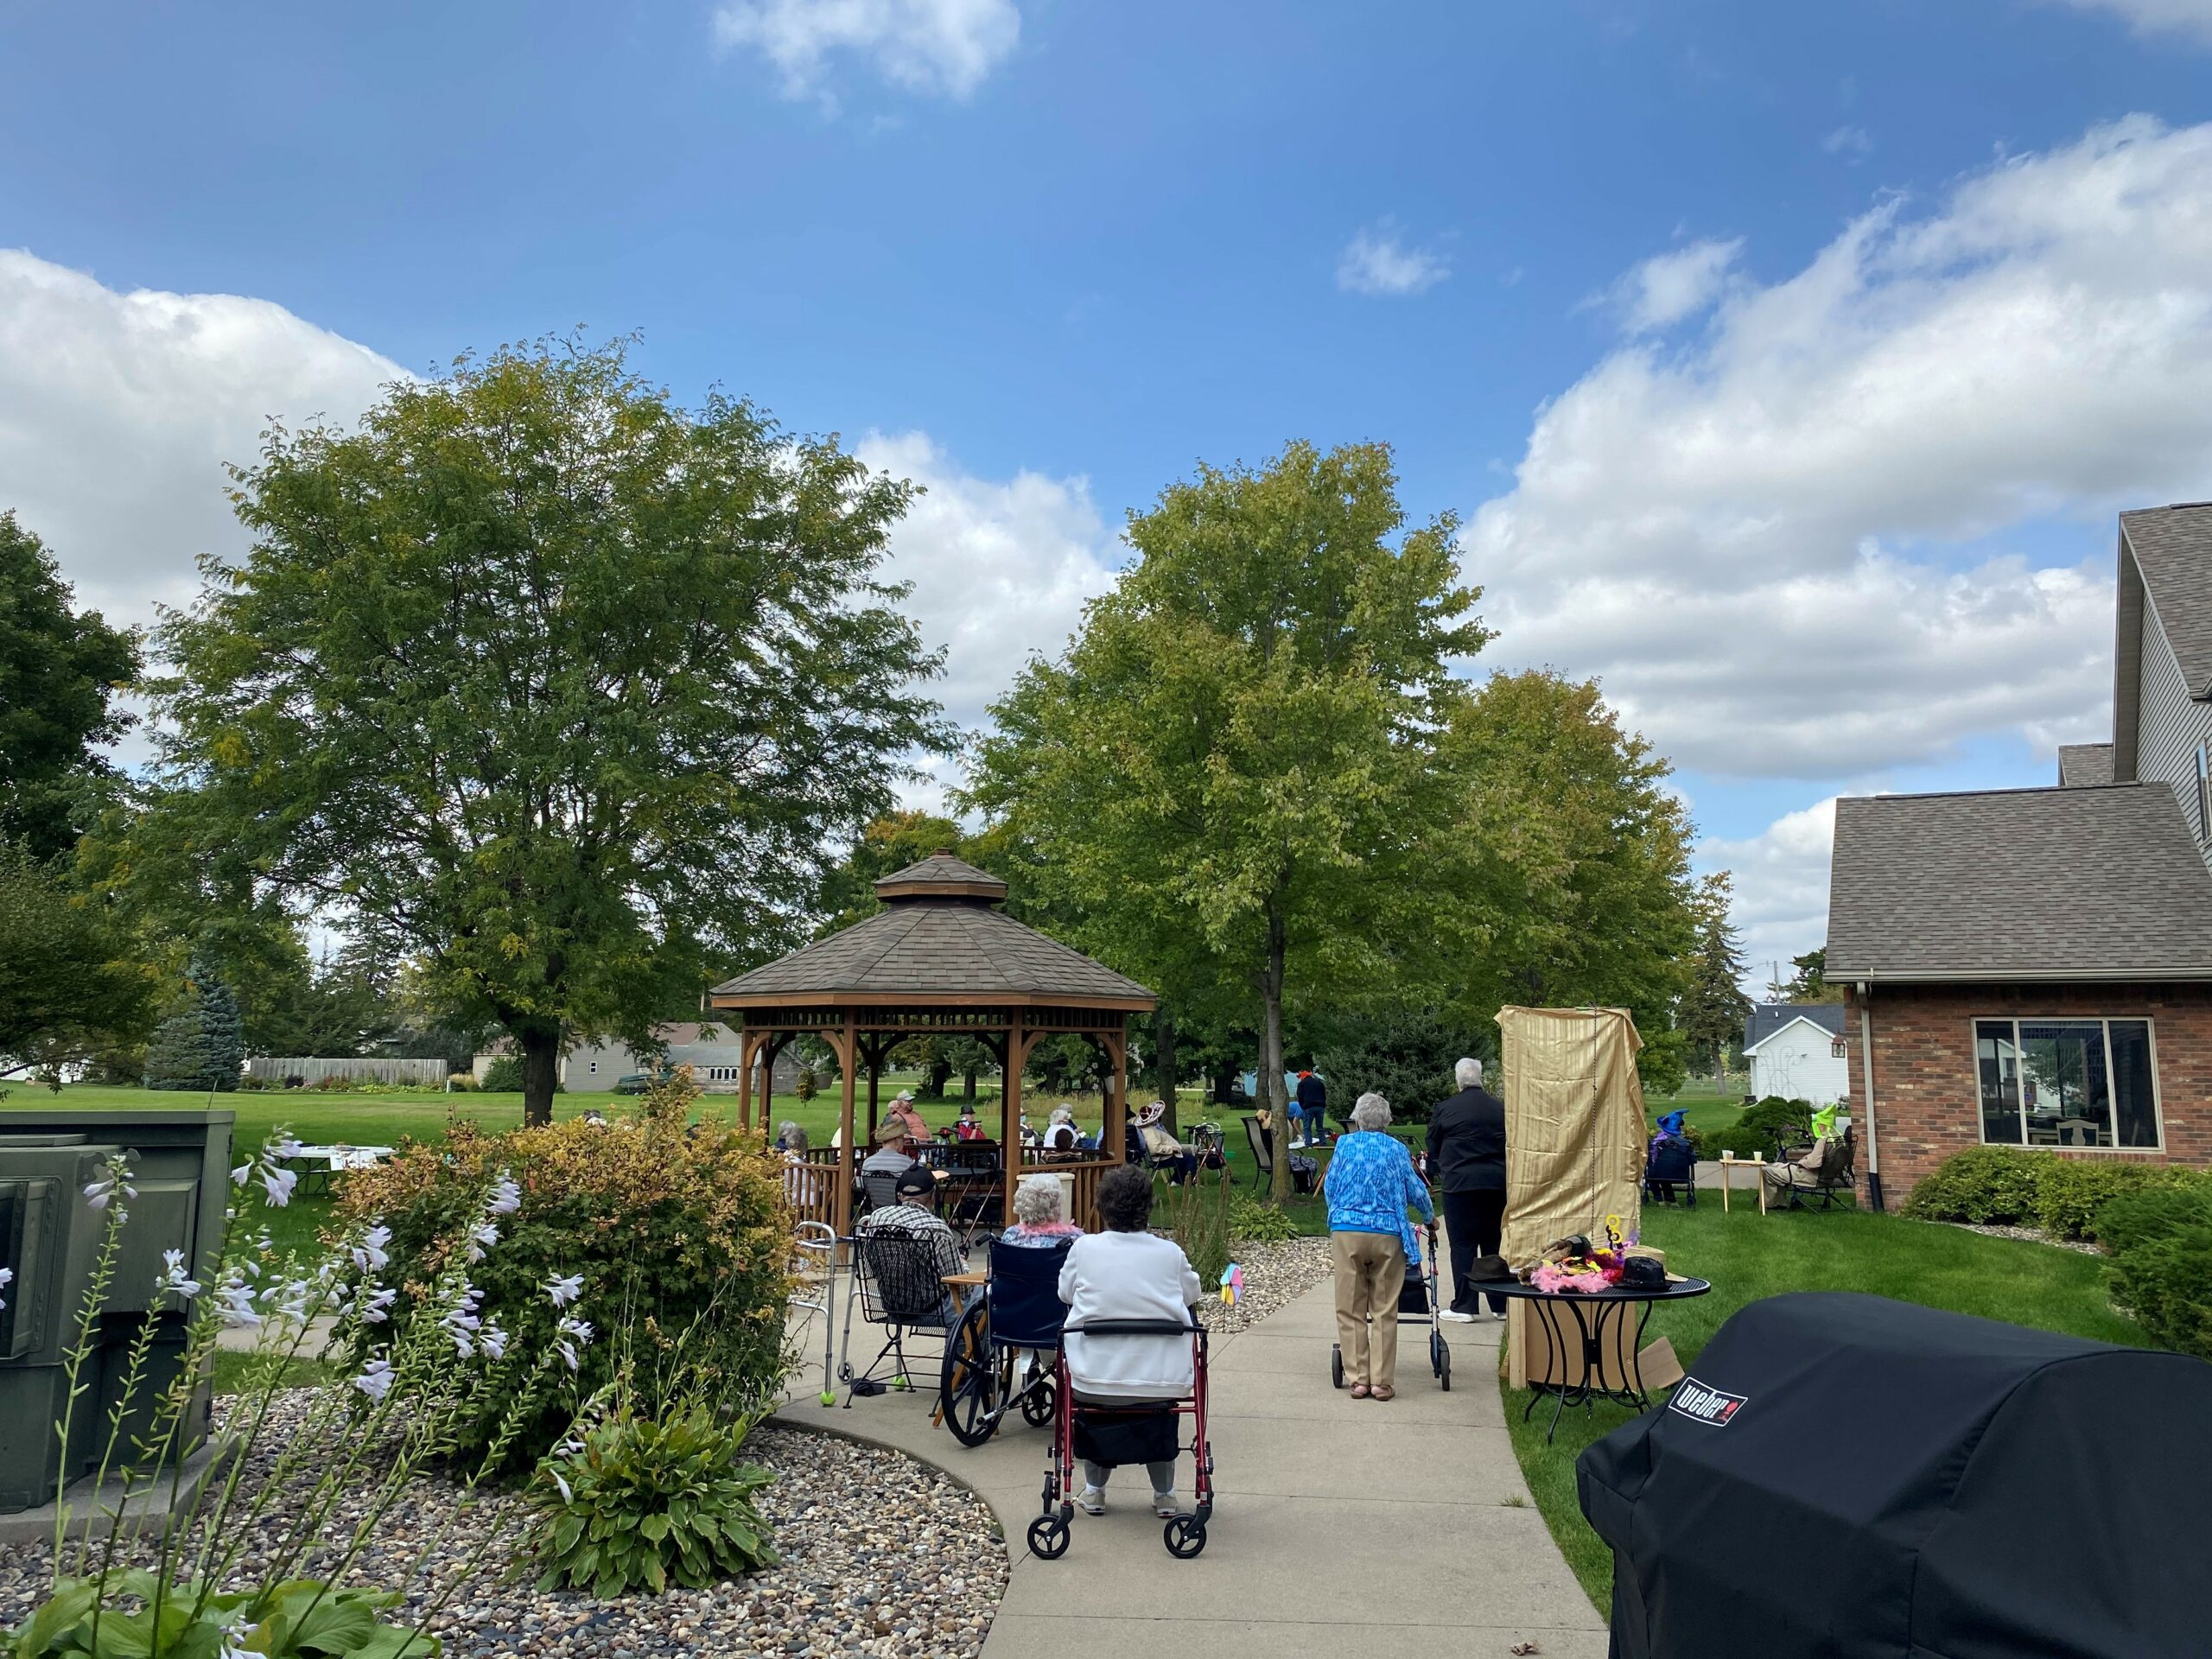 Several residents enjoyed our State Fair Fun celebration to end the summer!